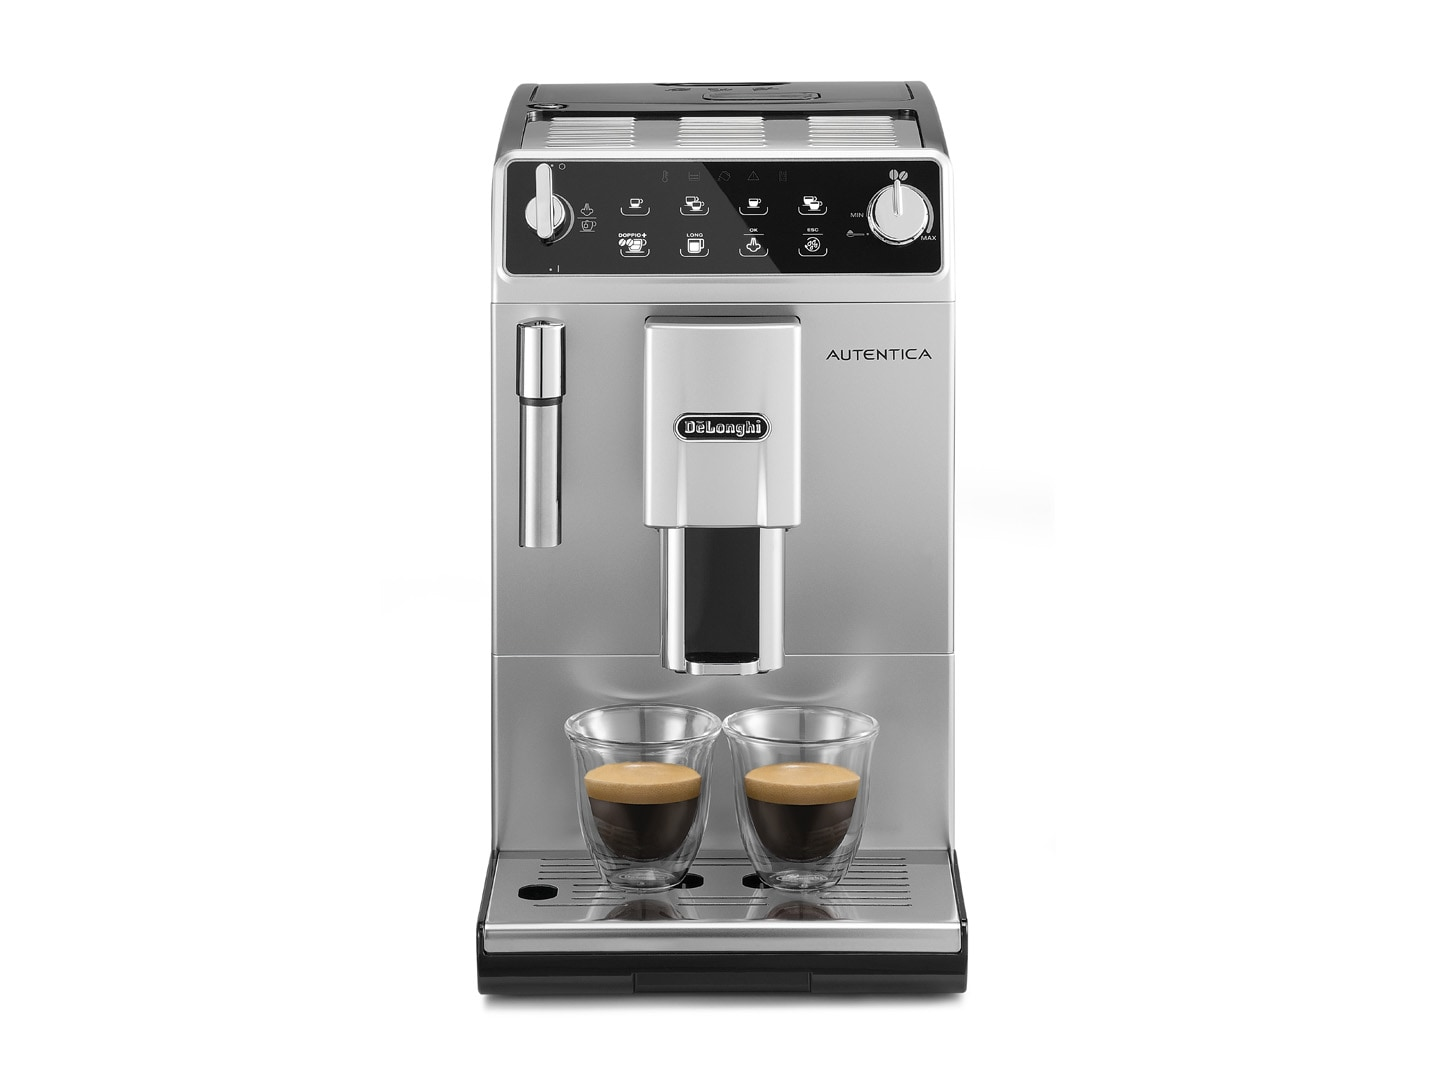 DE'LONGHI - Autentica ETAM 29.510.SB - Automatic caffee makers